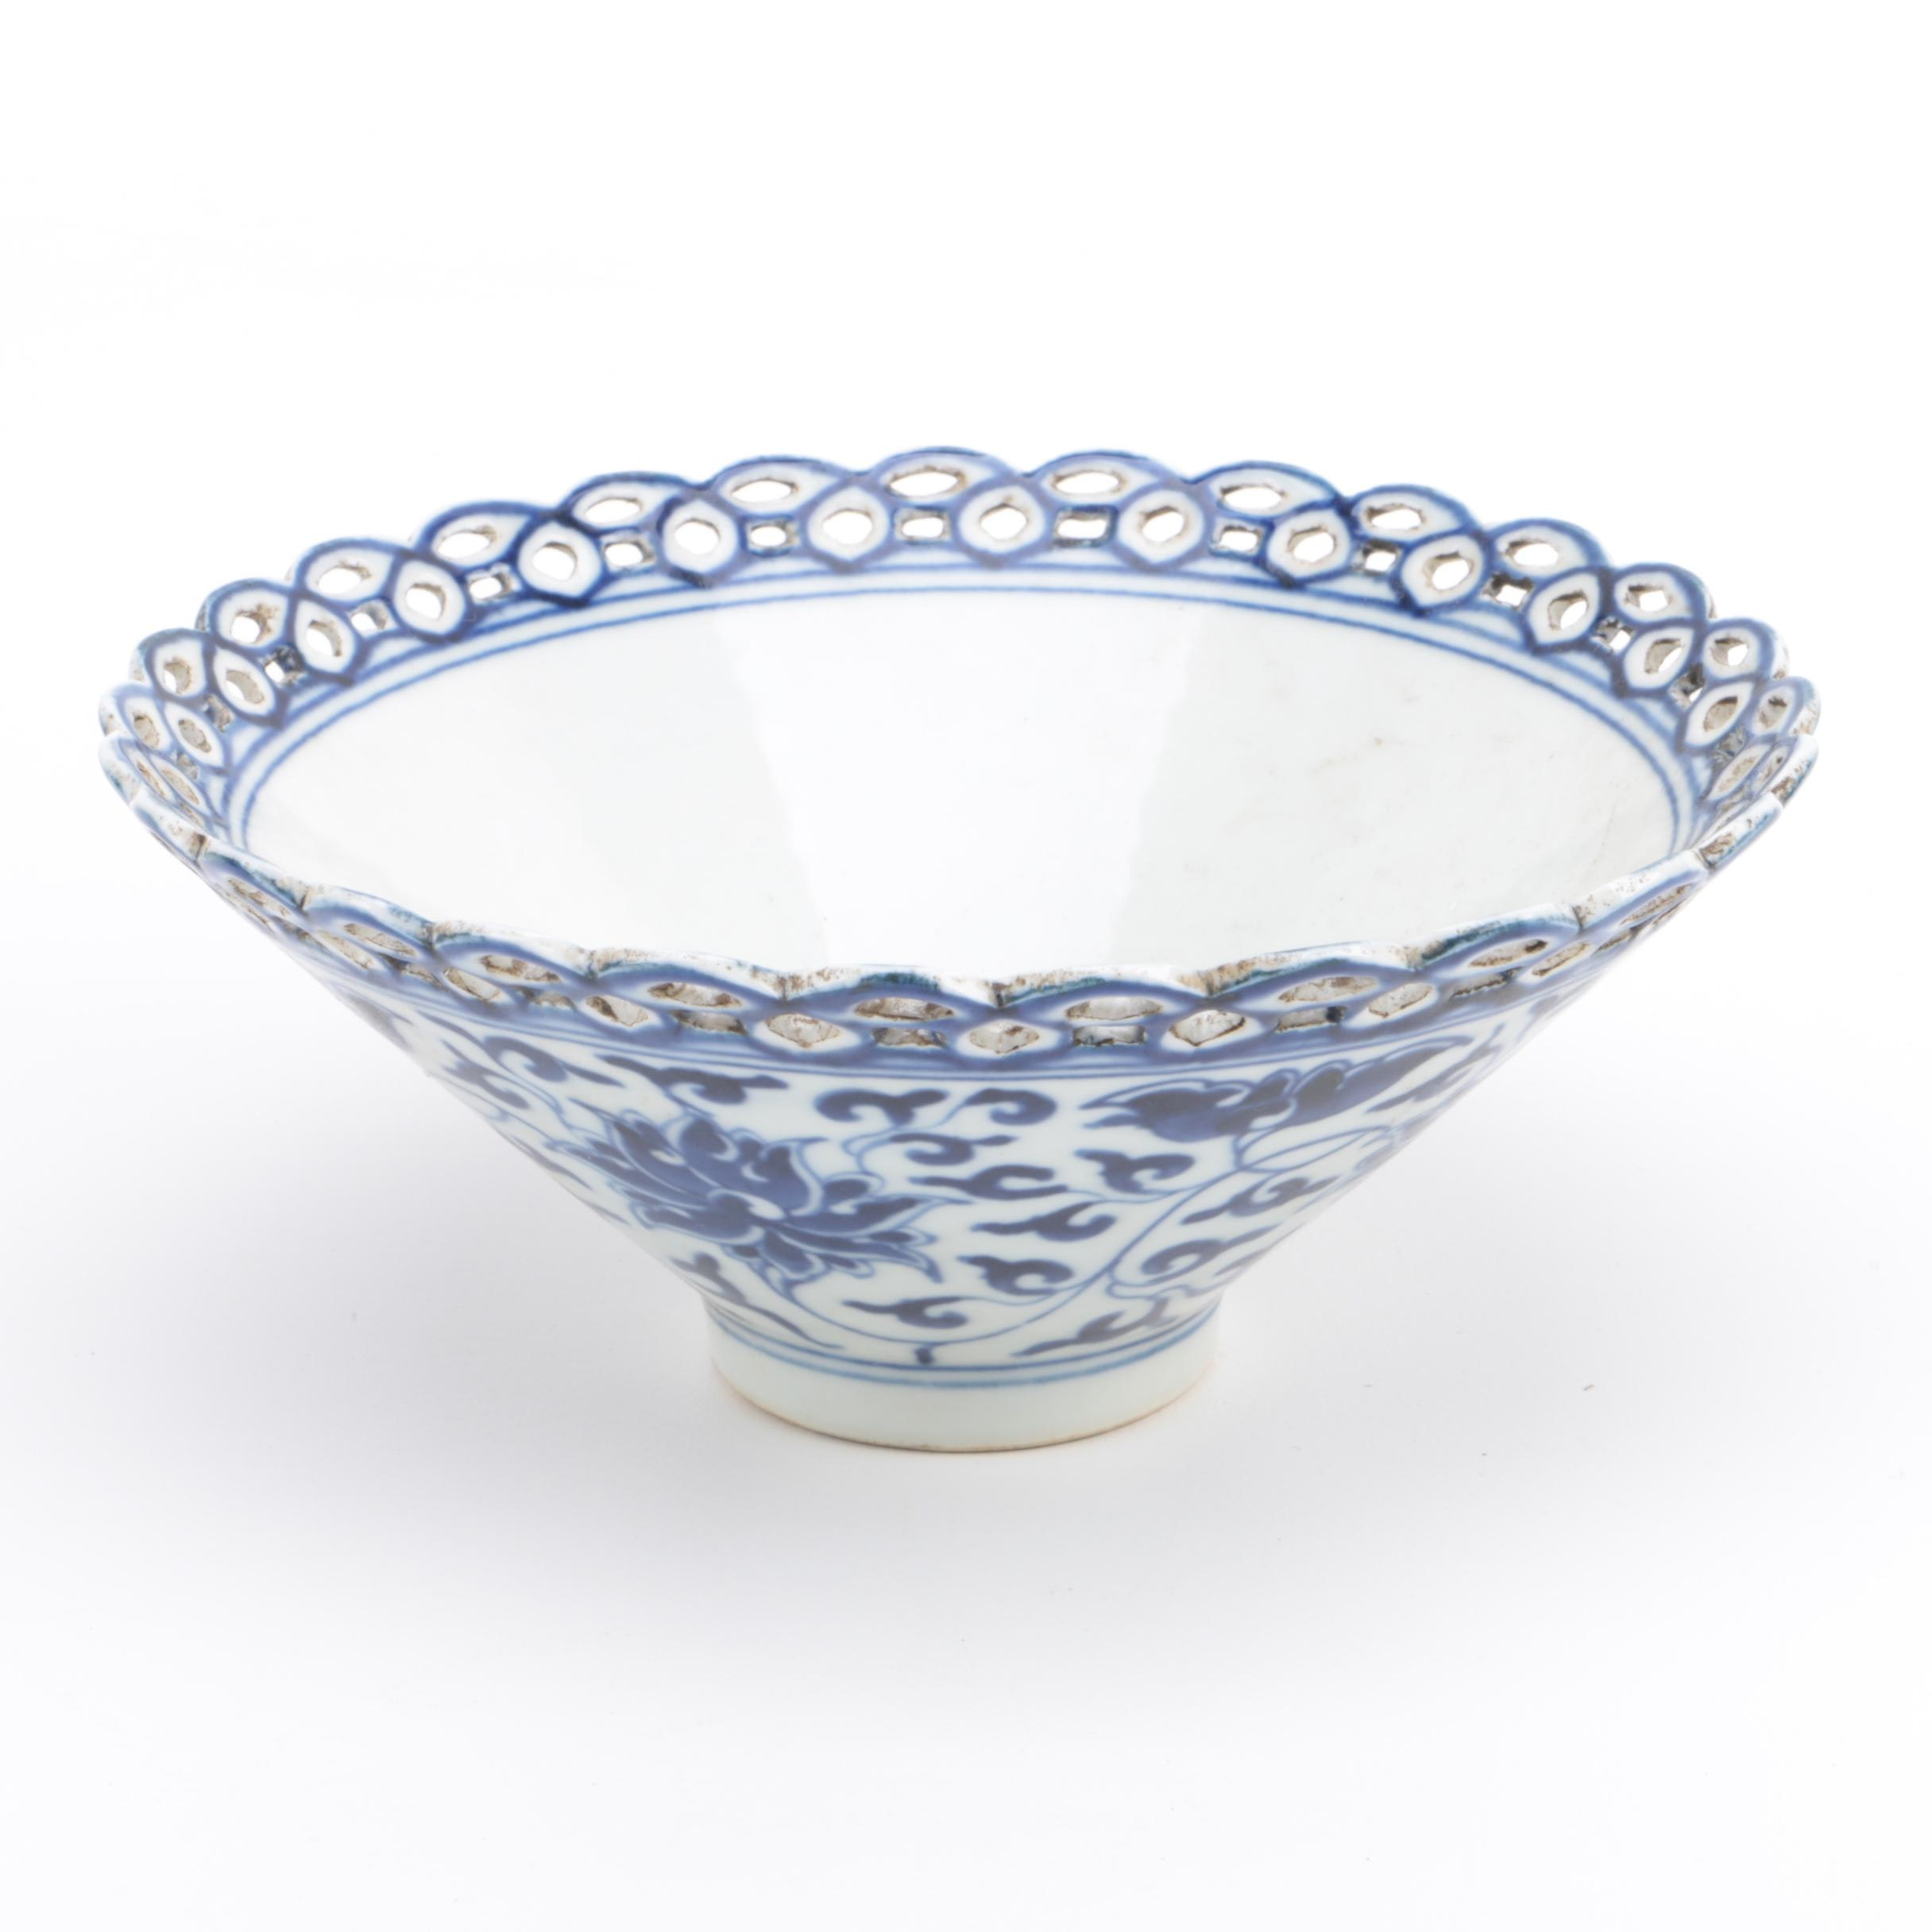 Chinese Decorative Ceramic Bowl